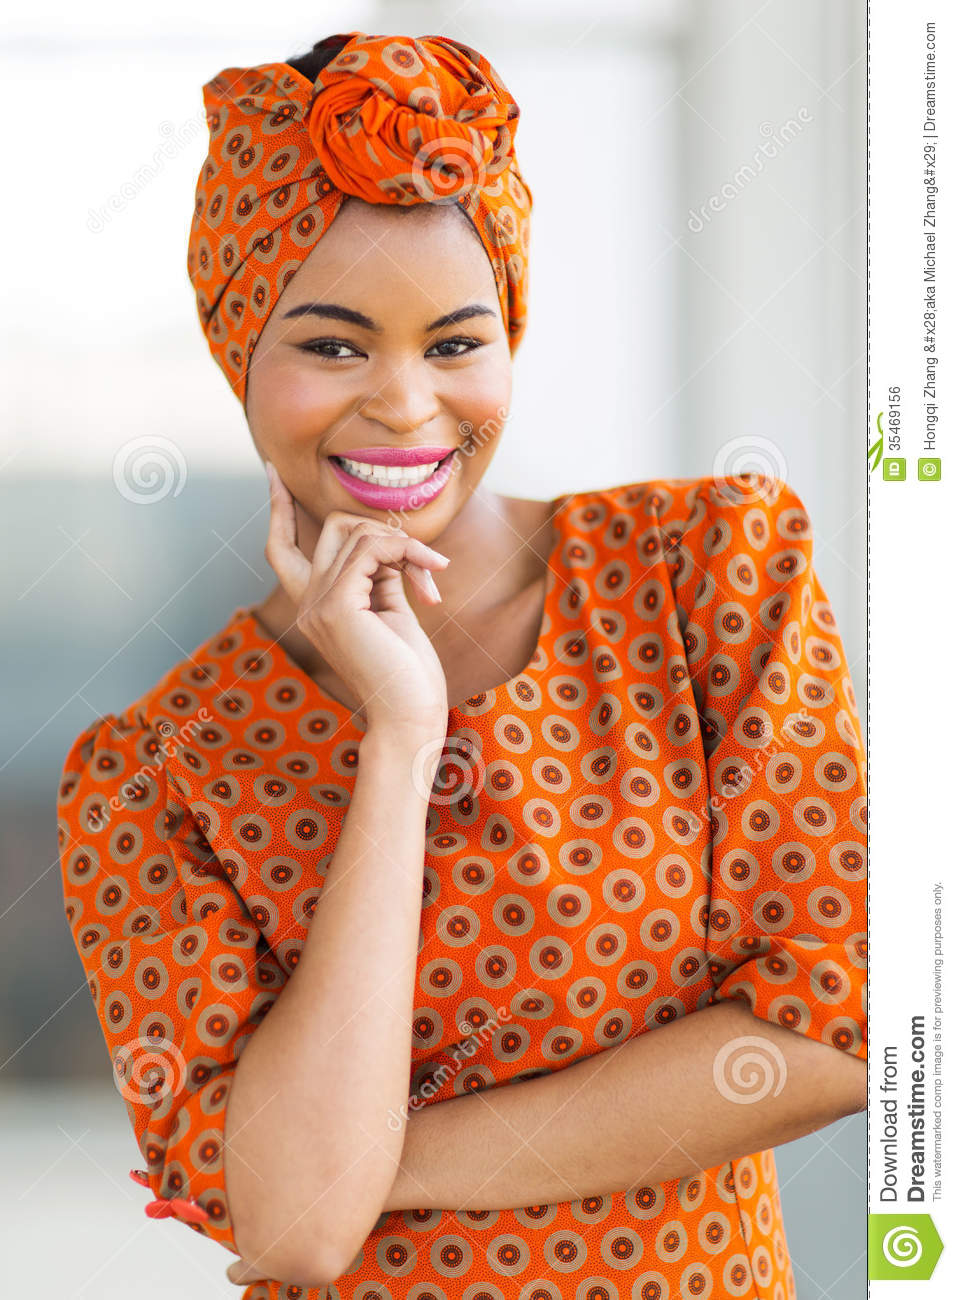 Attractive african woman wearing traditional attire